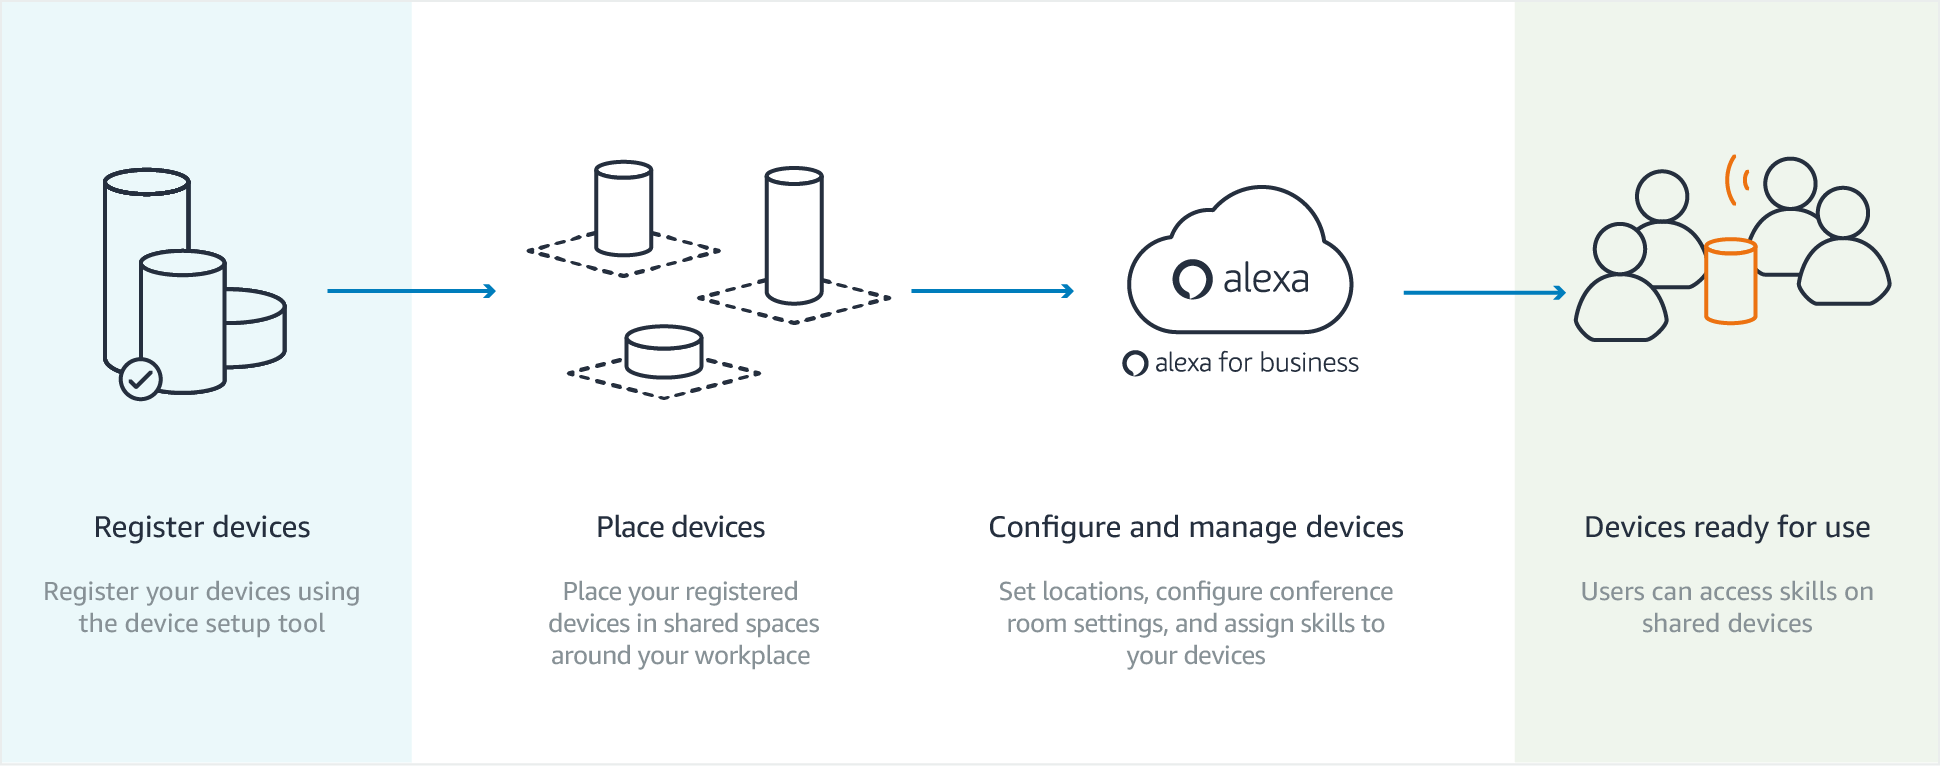 alexa-for-business_shared-devices